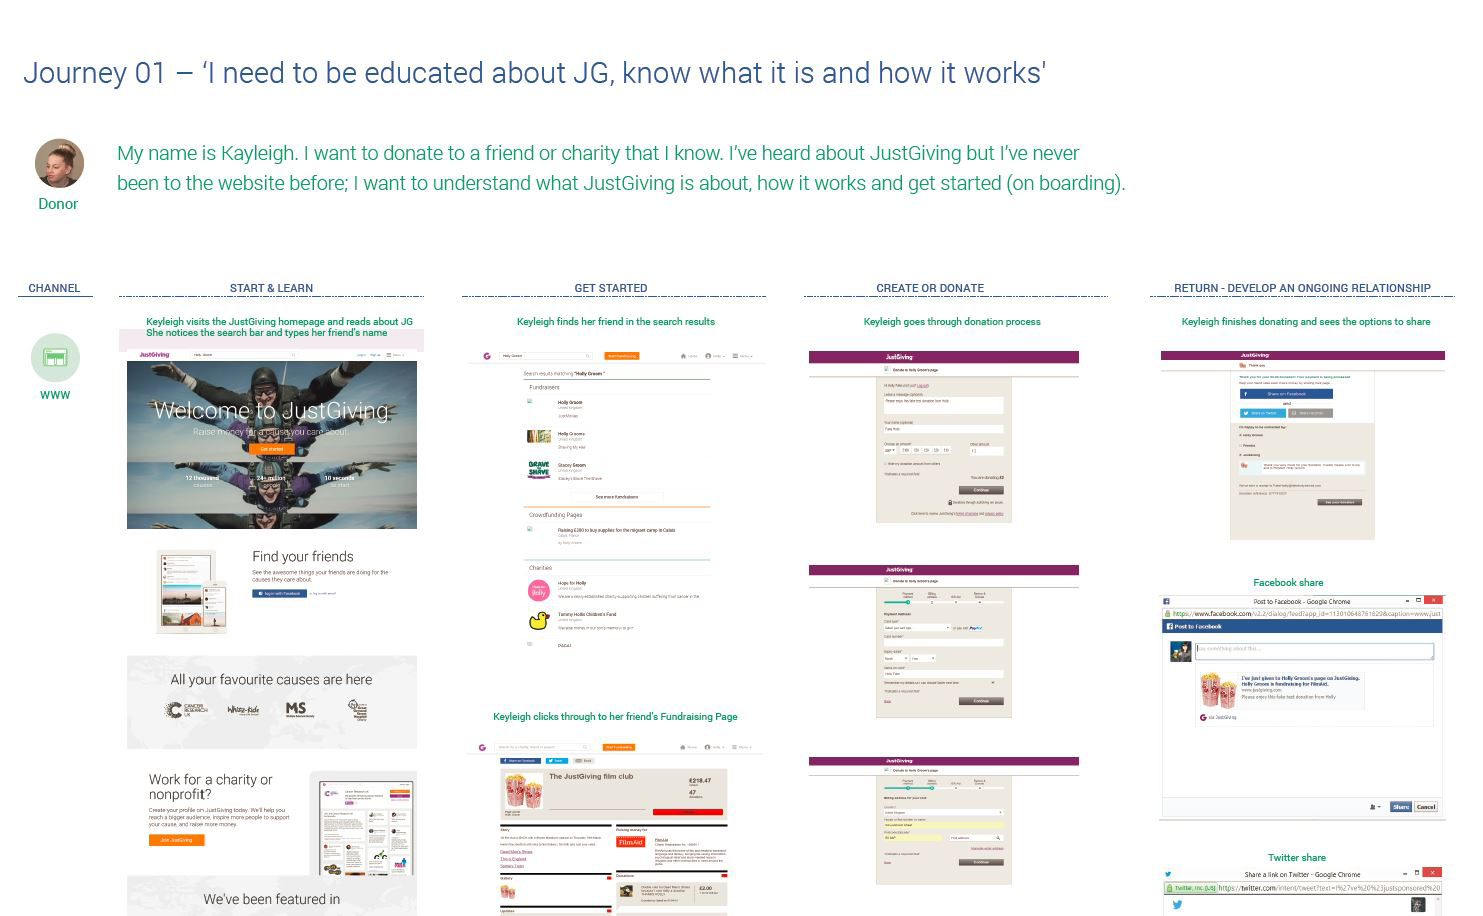 A screen grab of part of a content audit journey map